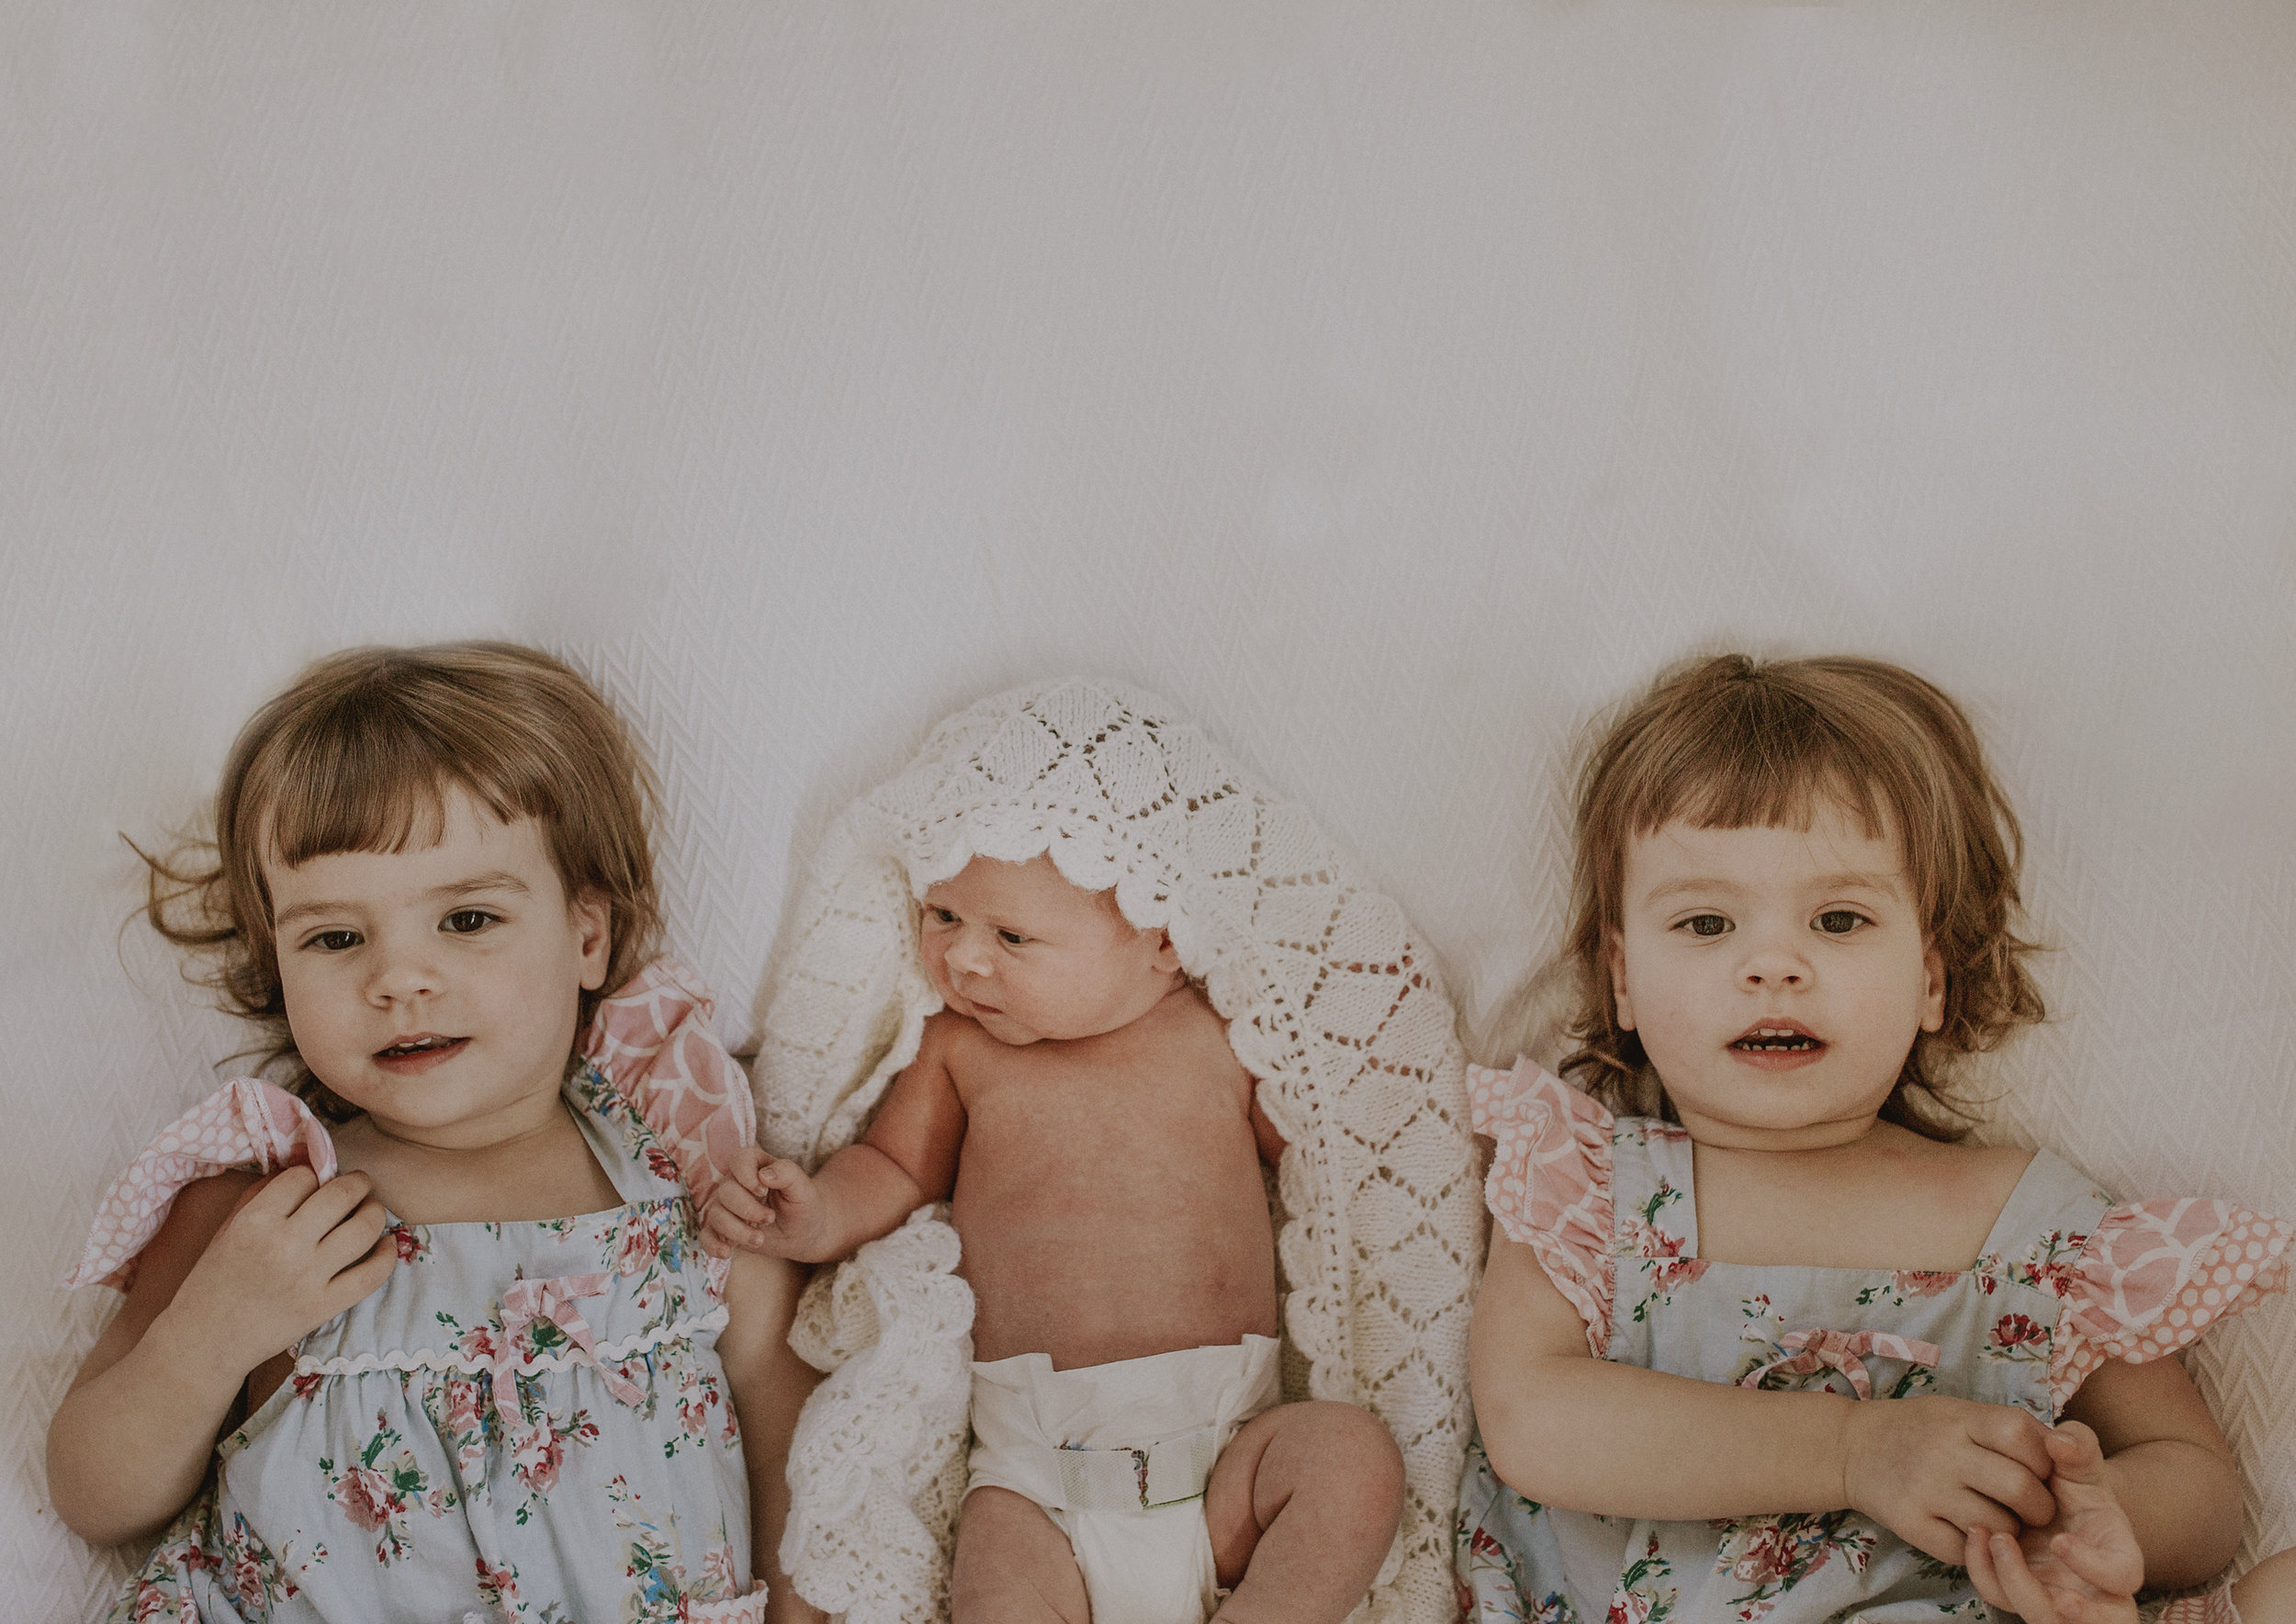 Twins girls and their newborn baby brother